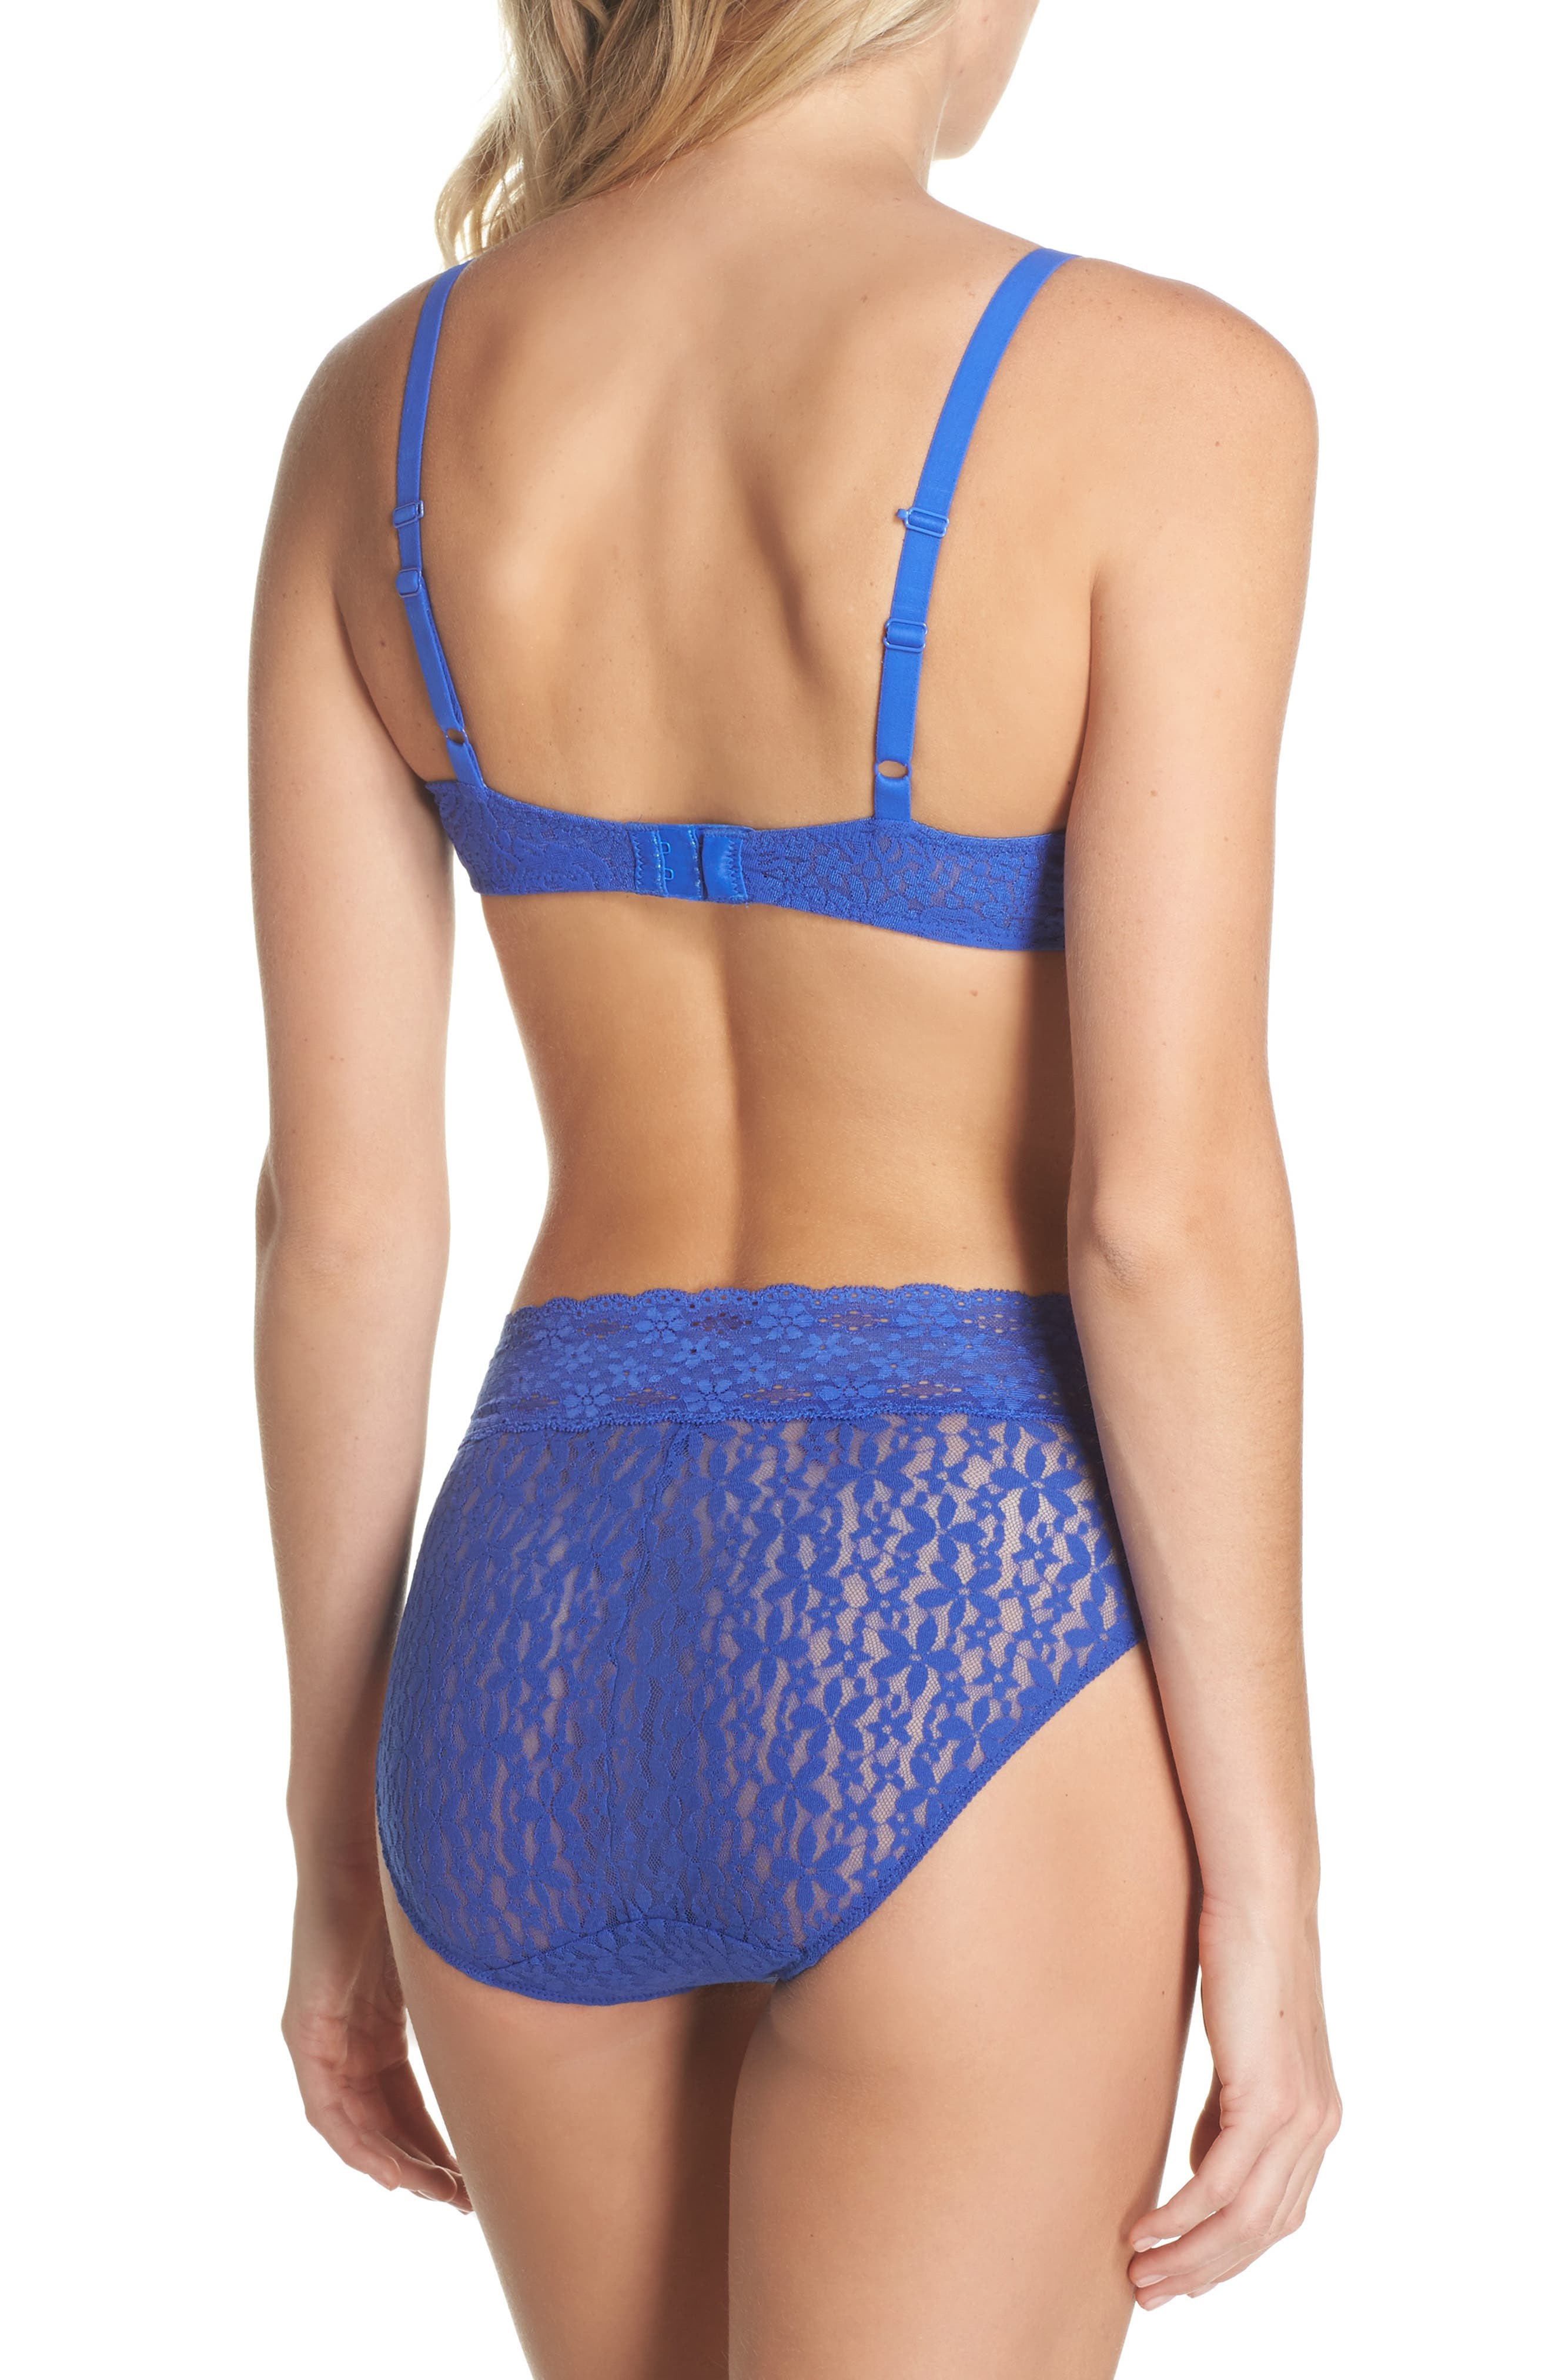 'Halo Lace' Convertible Underwire Bra,                             Alternate thumbnail 6, color,                             Dazzling Blue